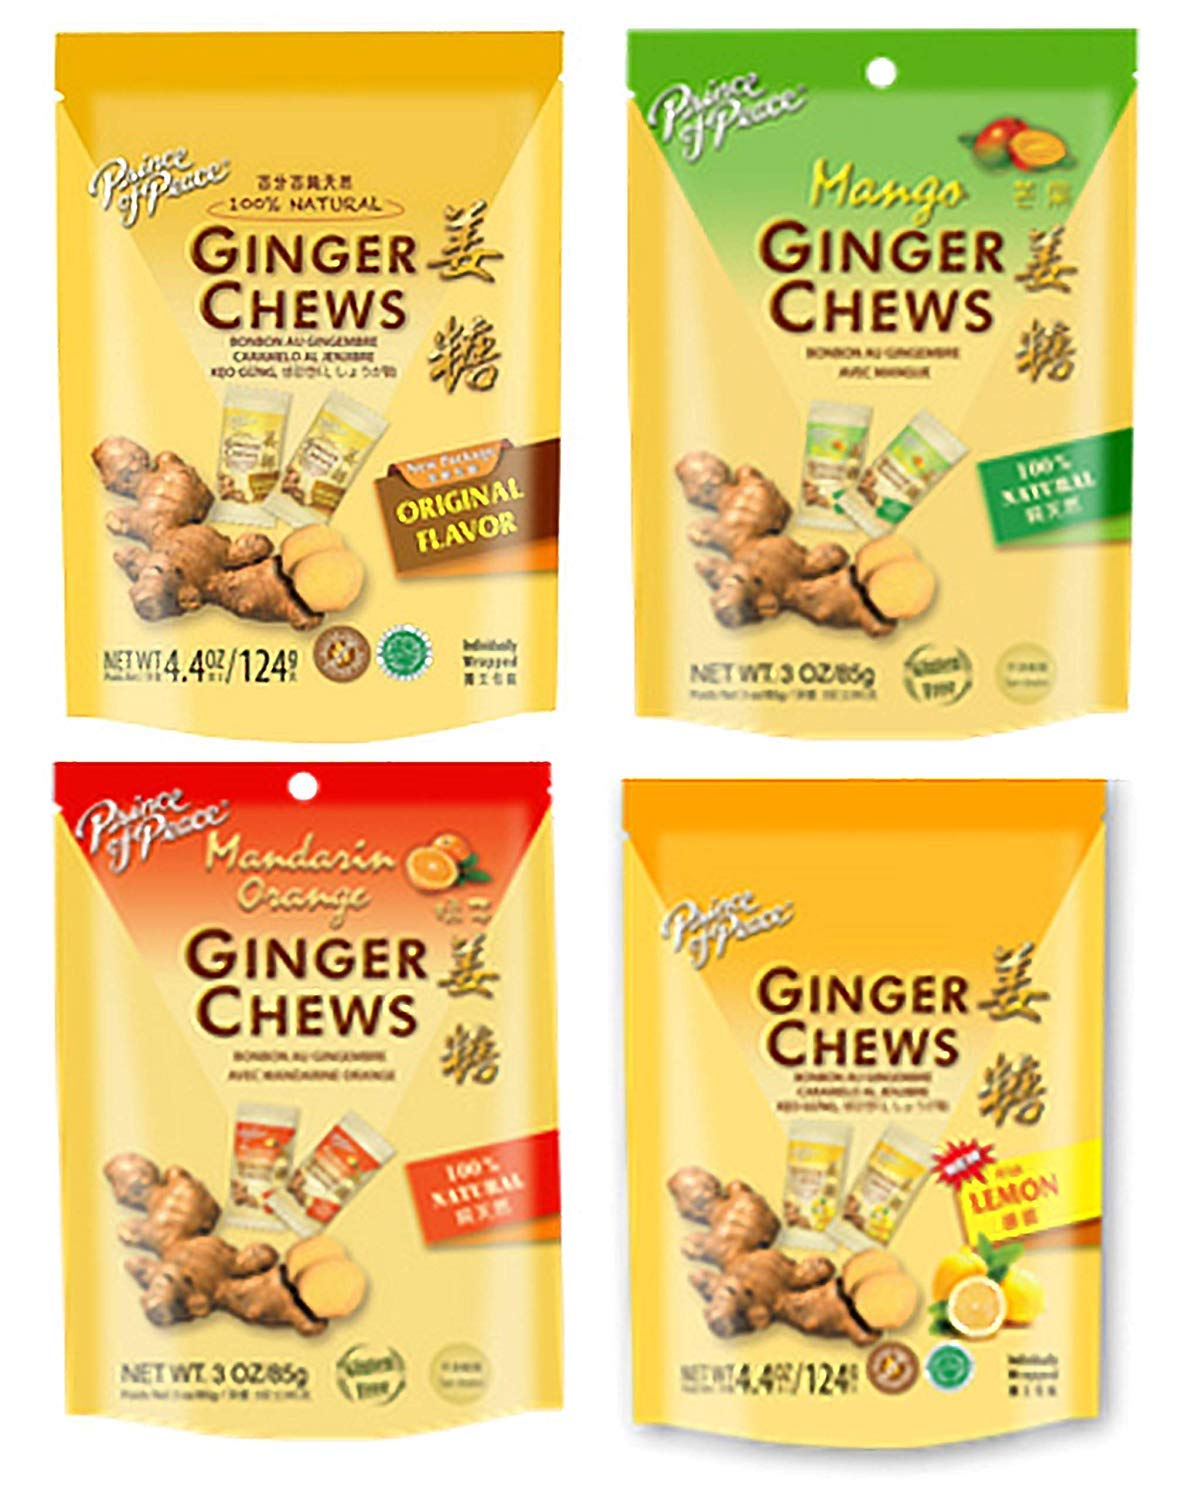 Prince of Peace Ginger Chews Pack of Assorted Flavors by Prince Of Peace